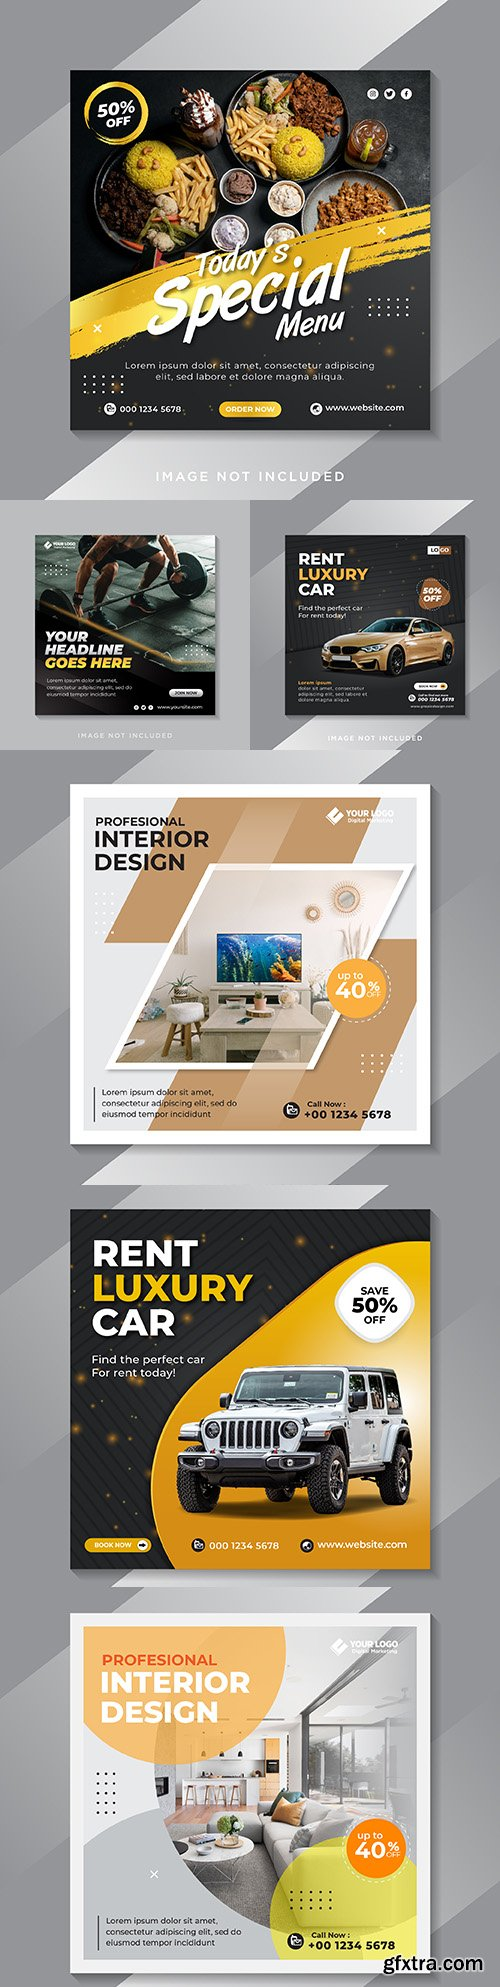 Social media message template to promote sale of item